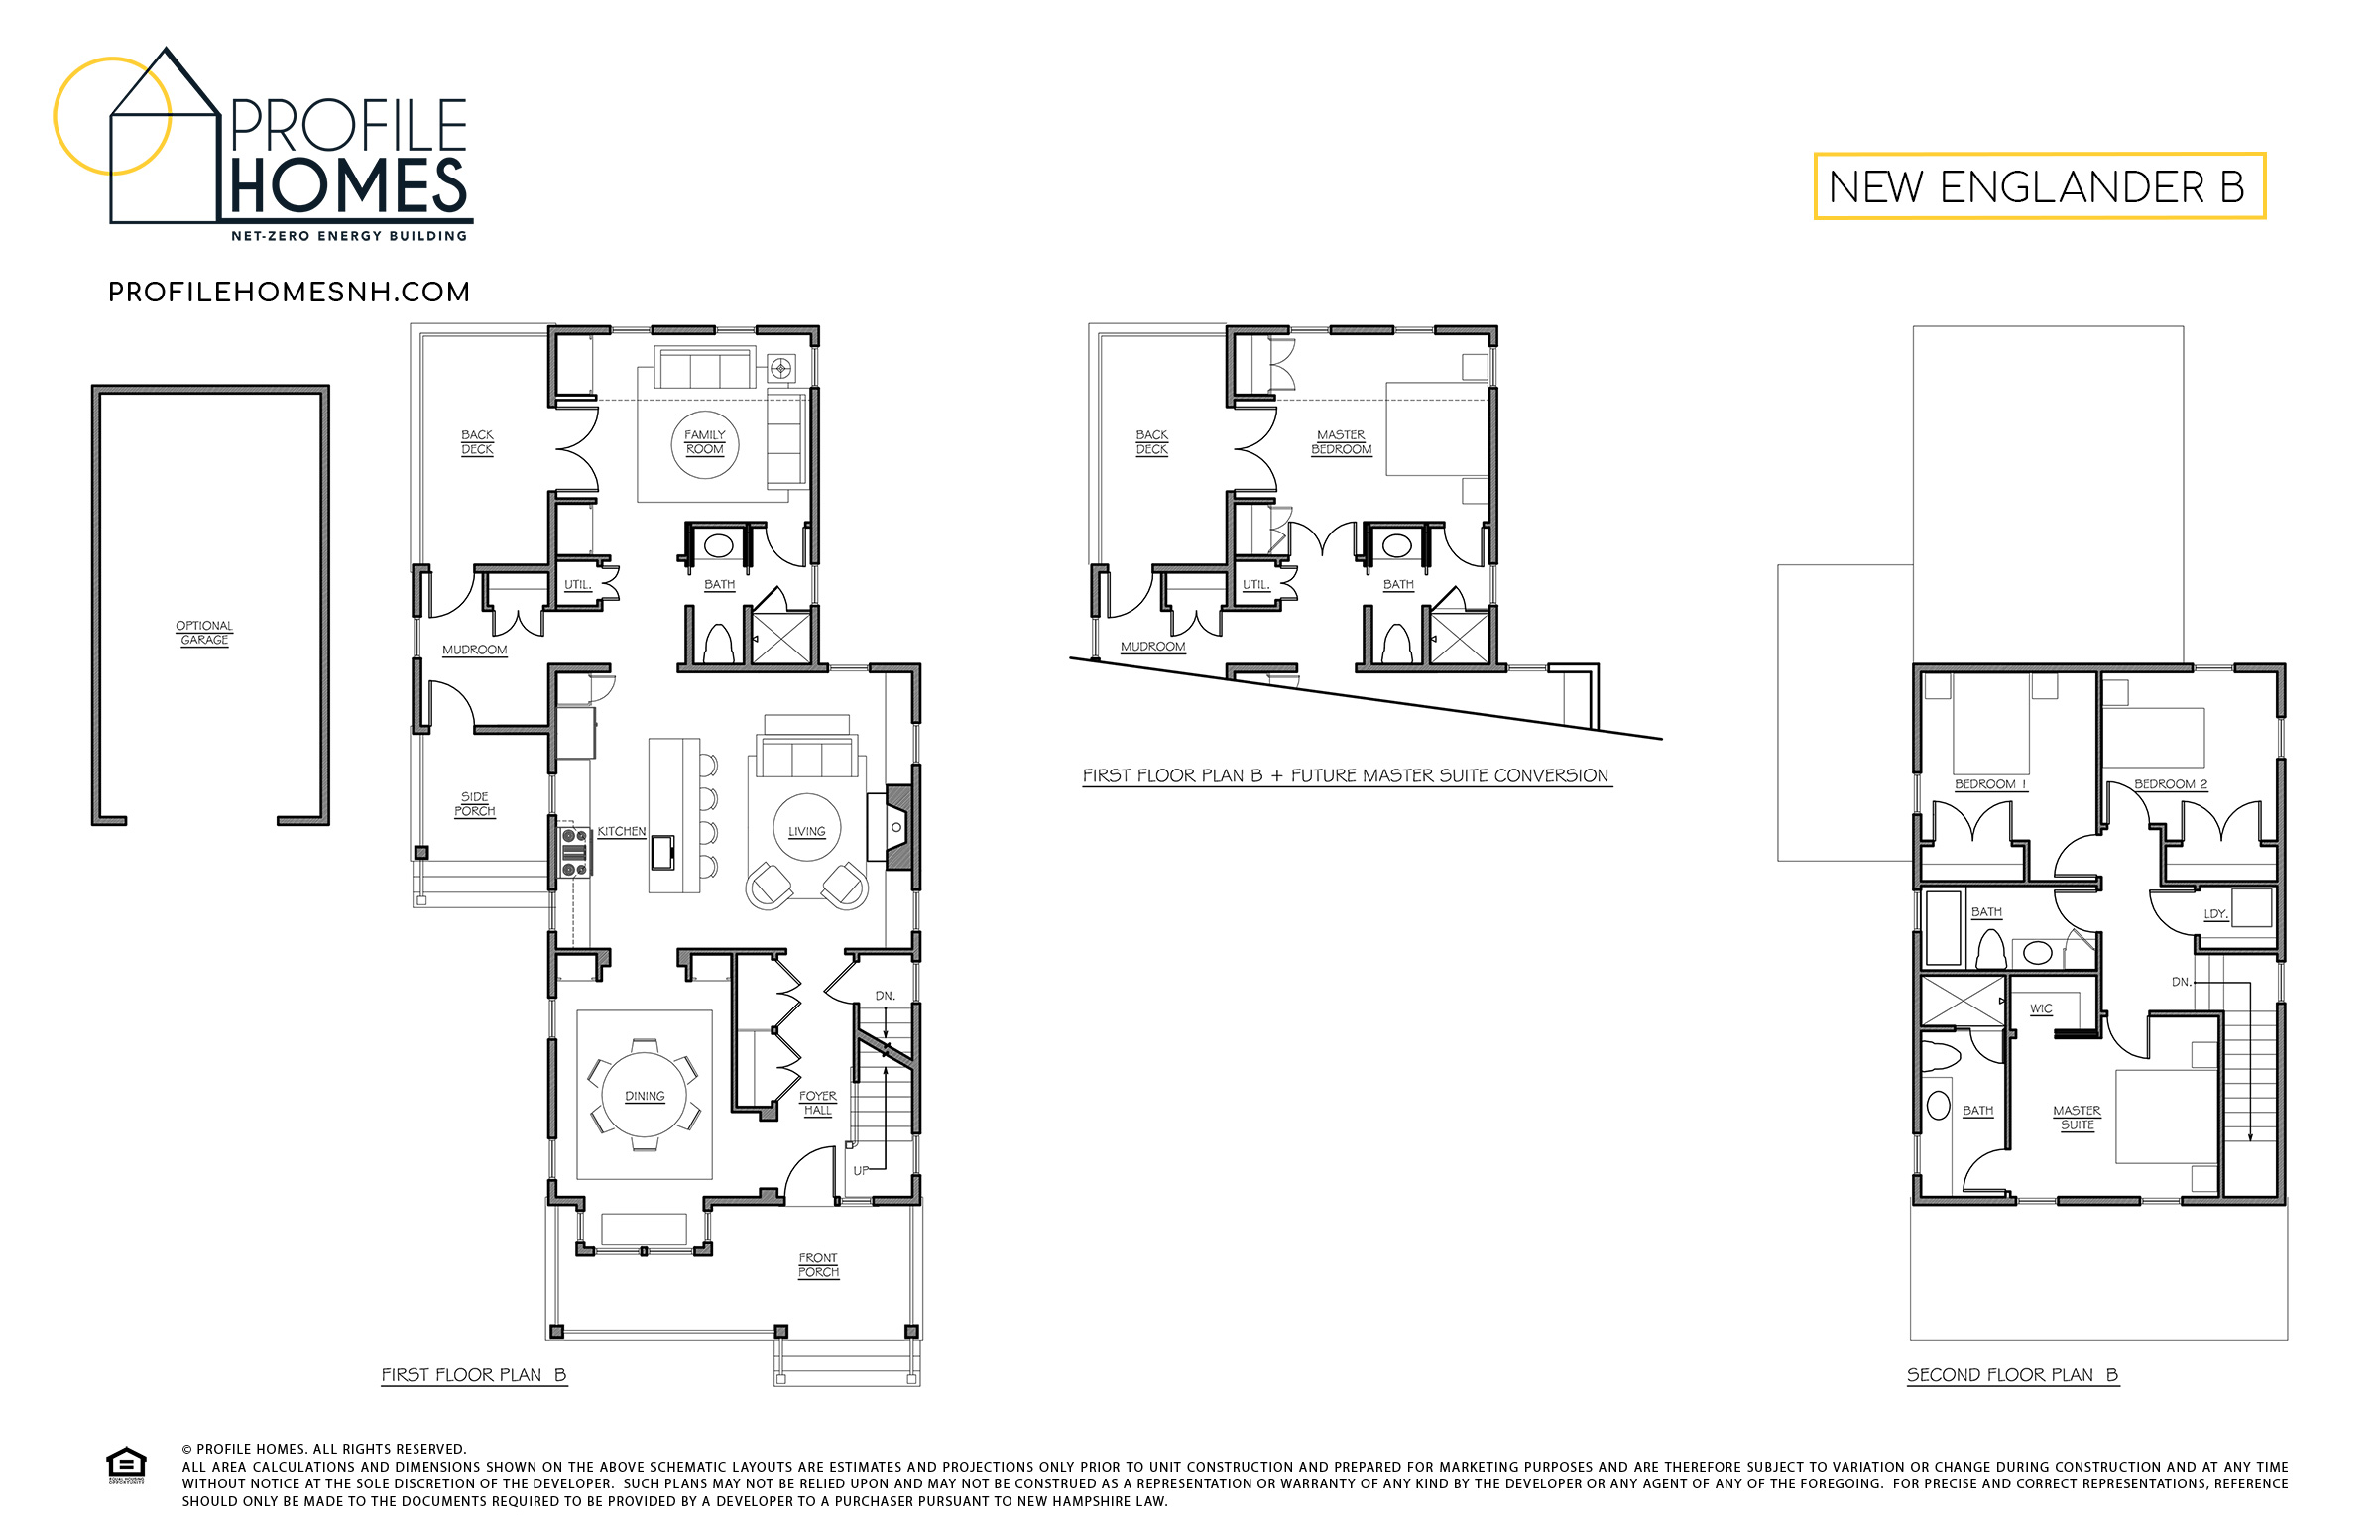 Profile Homes Floorplan New Englander B © 2018 Profile Homes